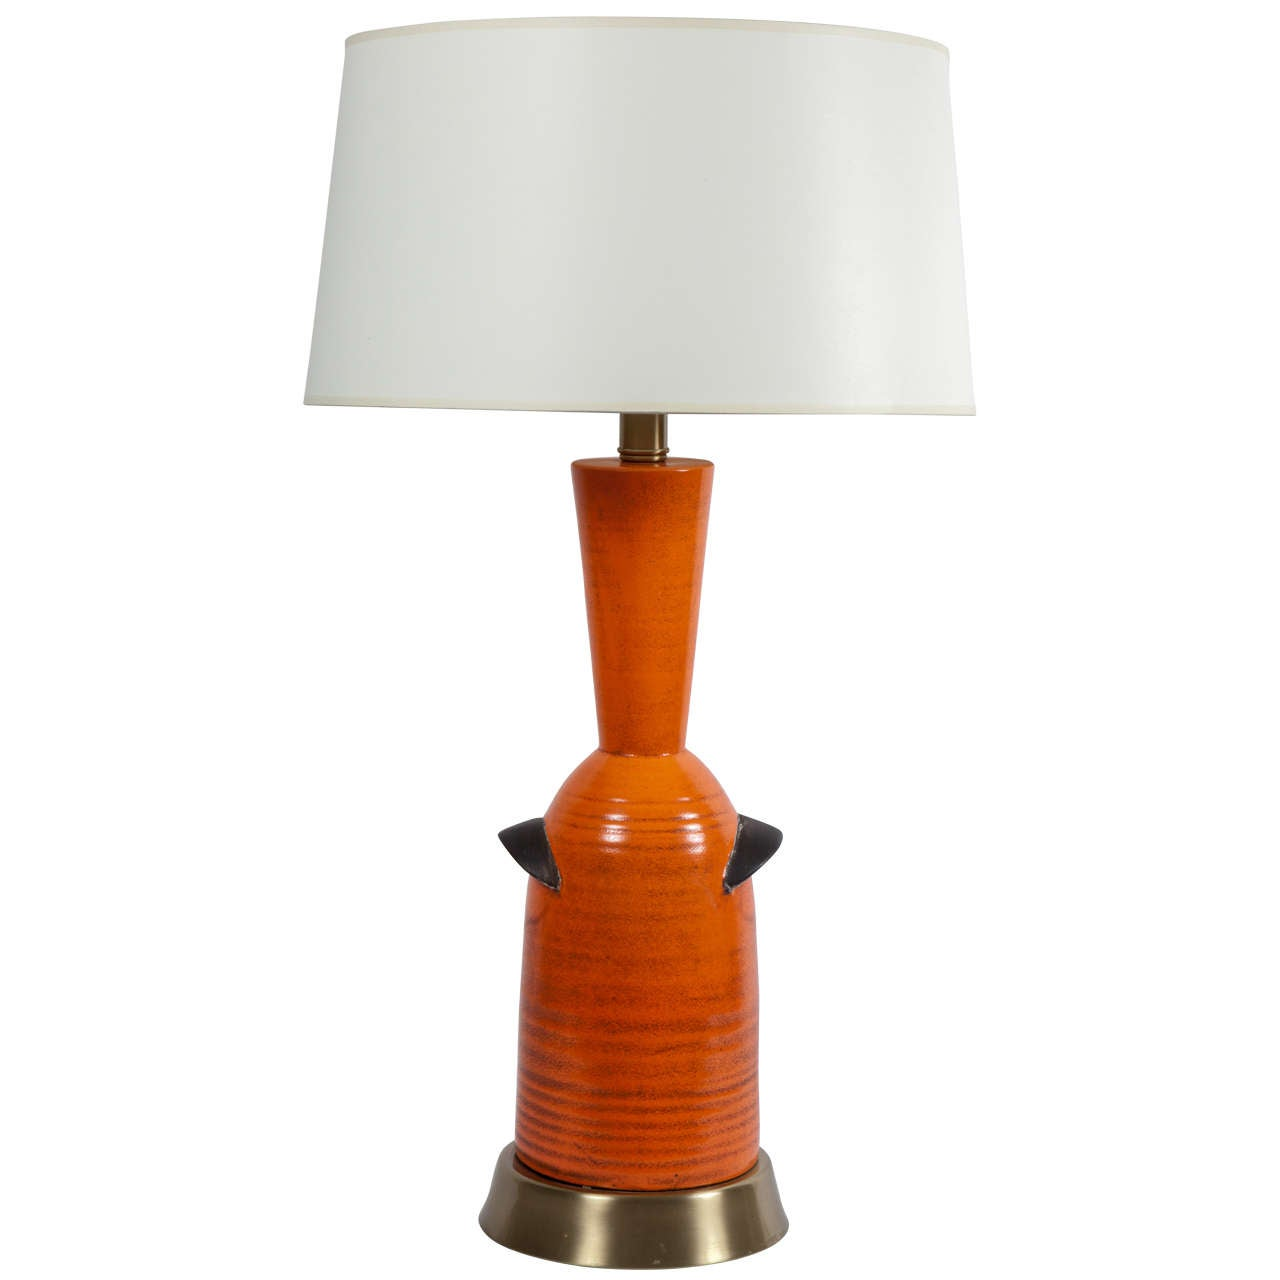 Orange Pottery Table Lamp by Raymor